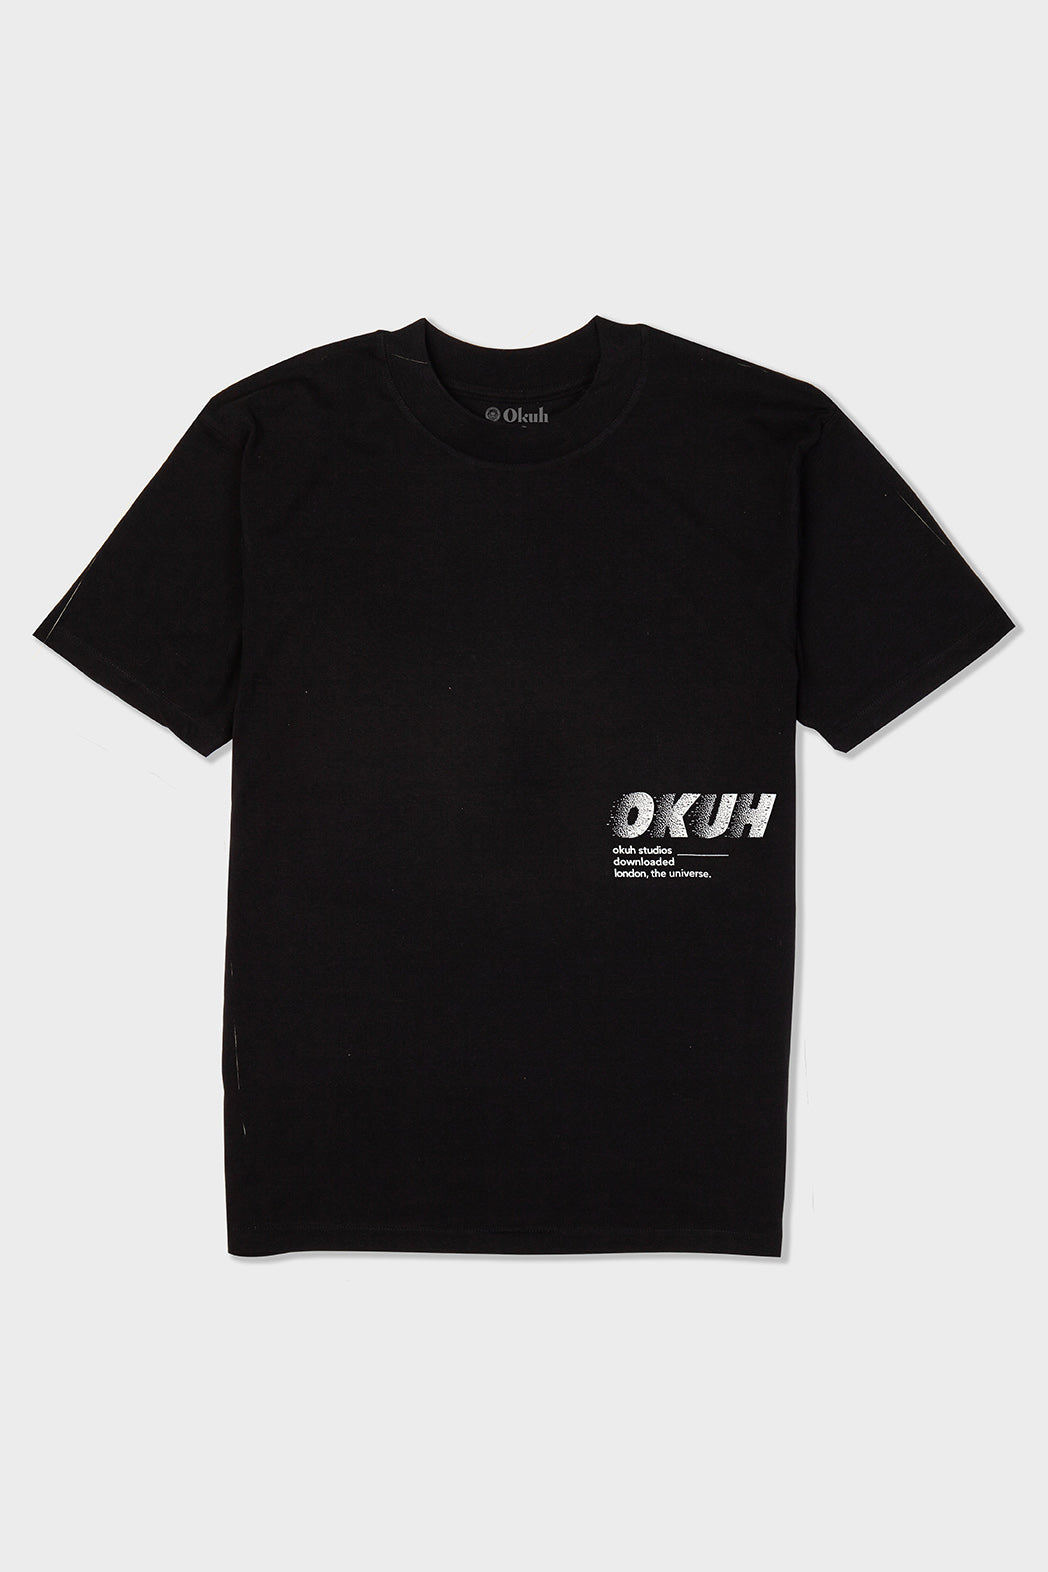 New Wave T-shirt - okuhstudios